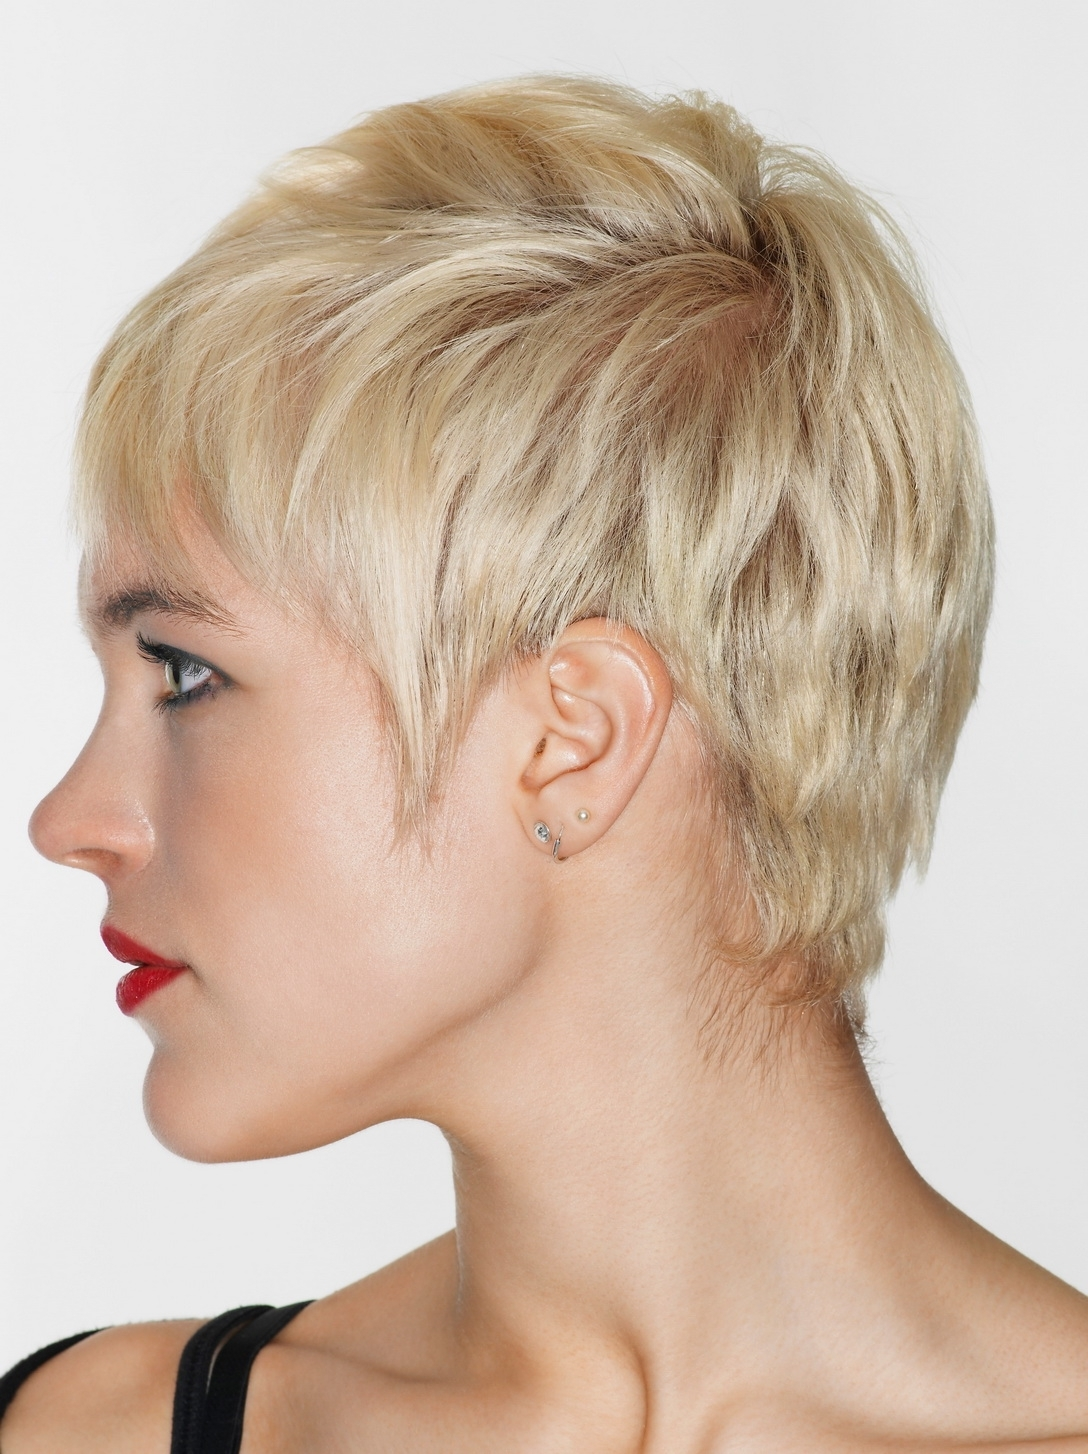 Short Layered Pixie Cut Hairstyles – Hairstyle For Women & Man Throughout Most Current Textured Pixie Hairstyles (View 14 of 15)